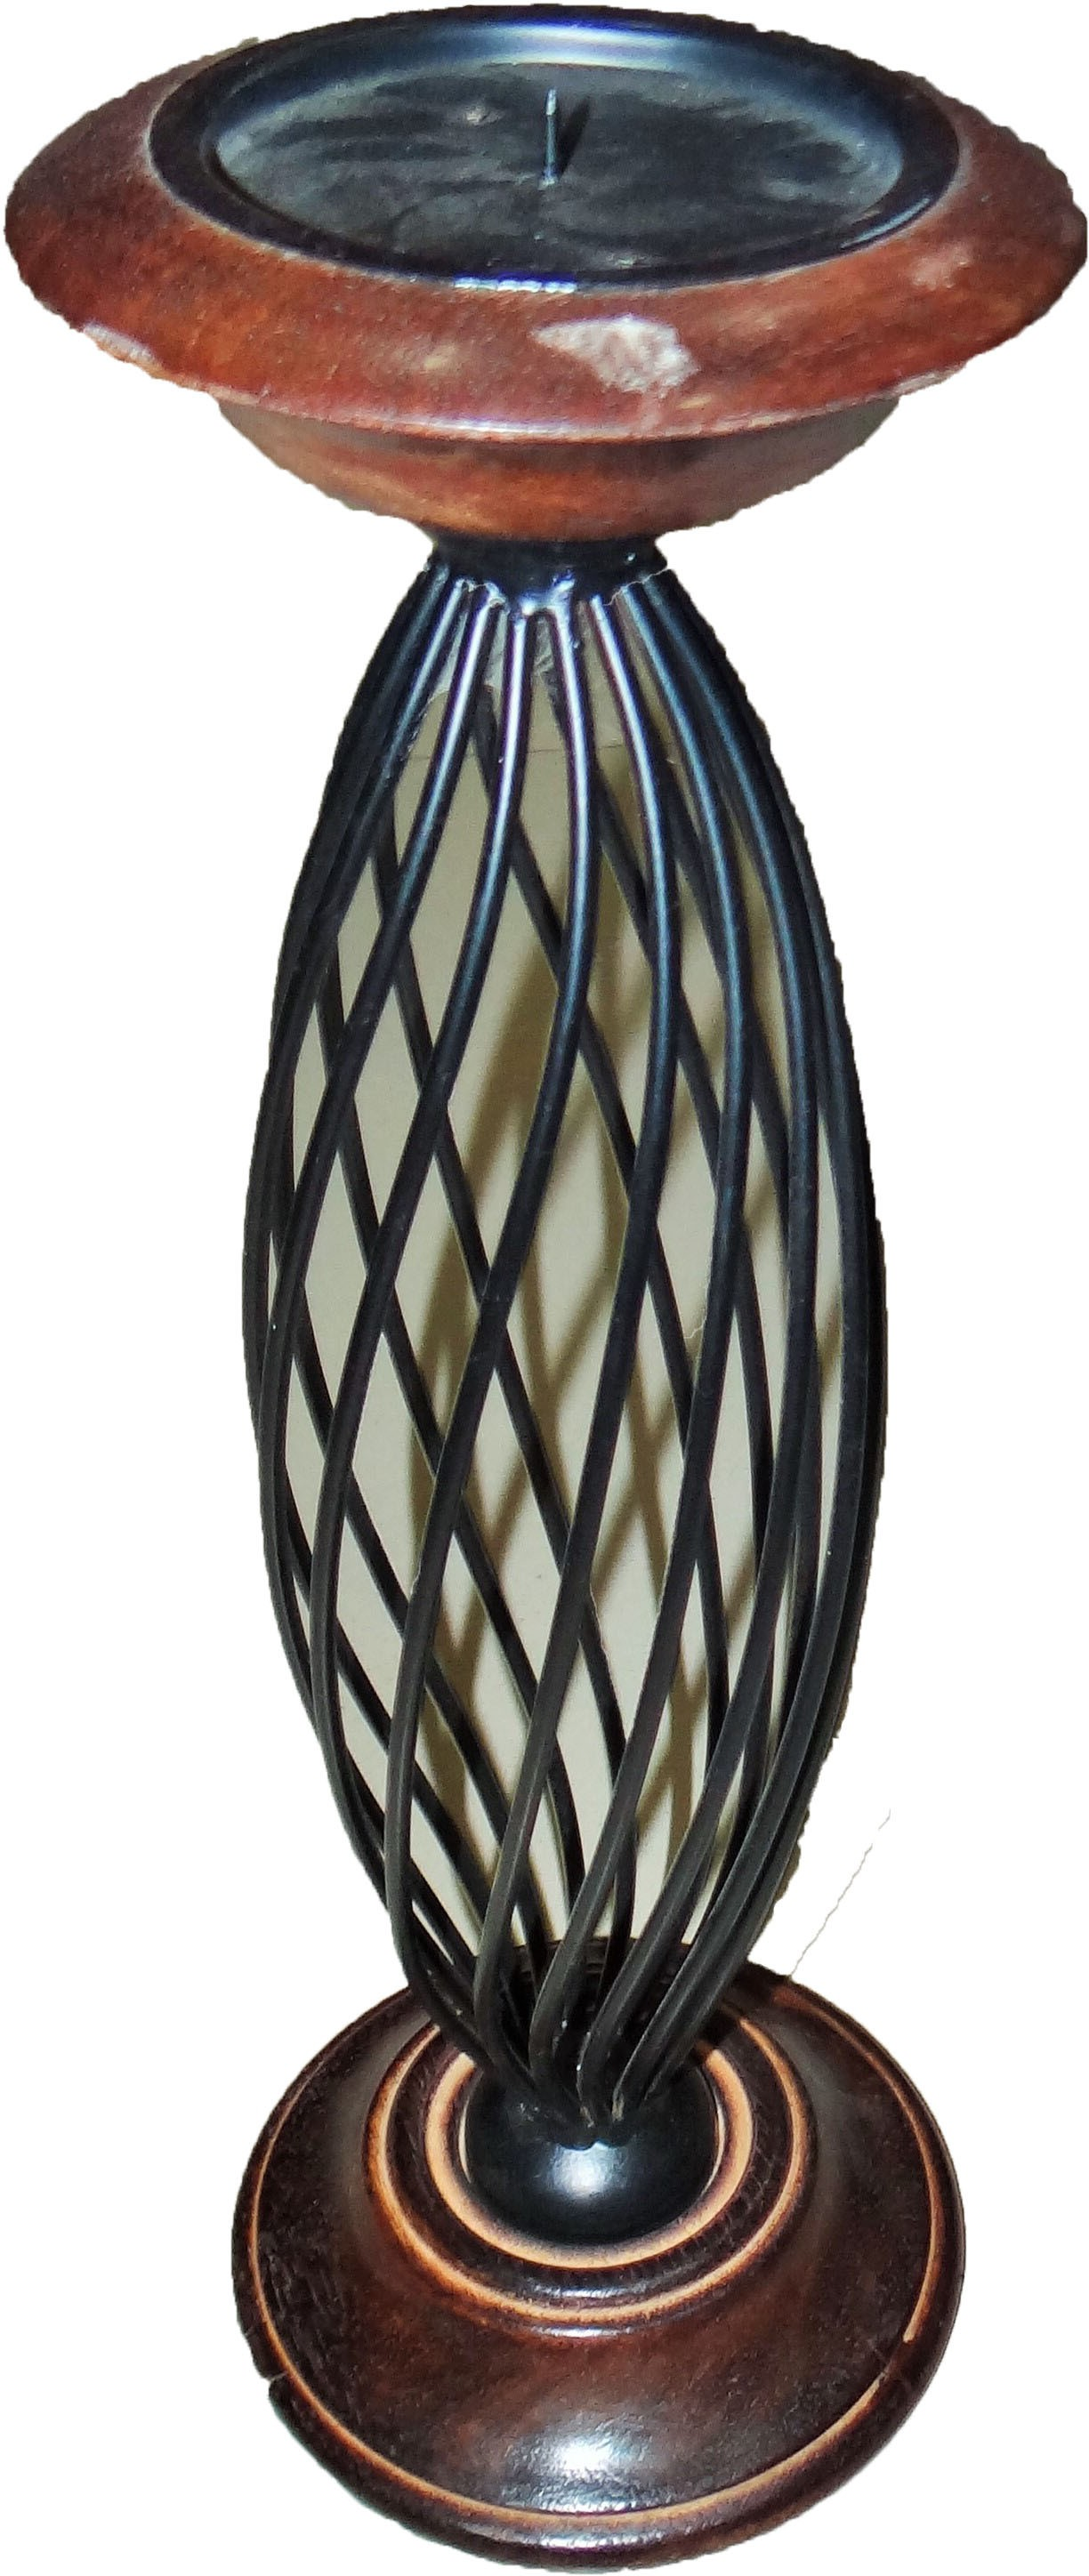 Krishak Wooden, Iron 1 - Cup Candle Holder